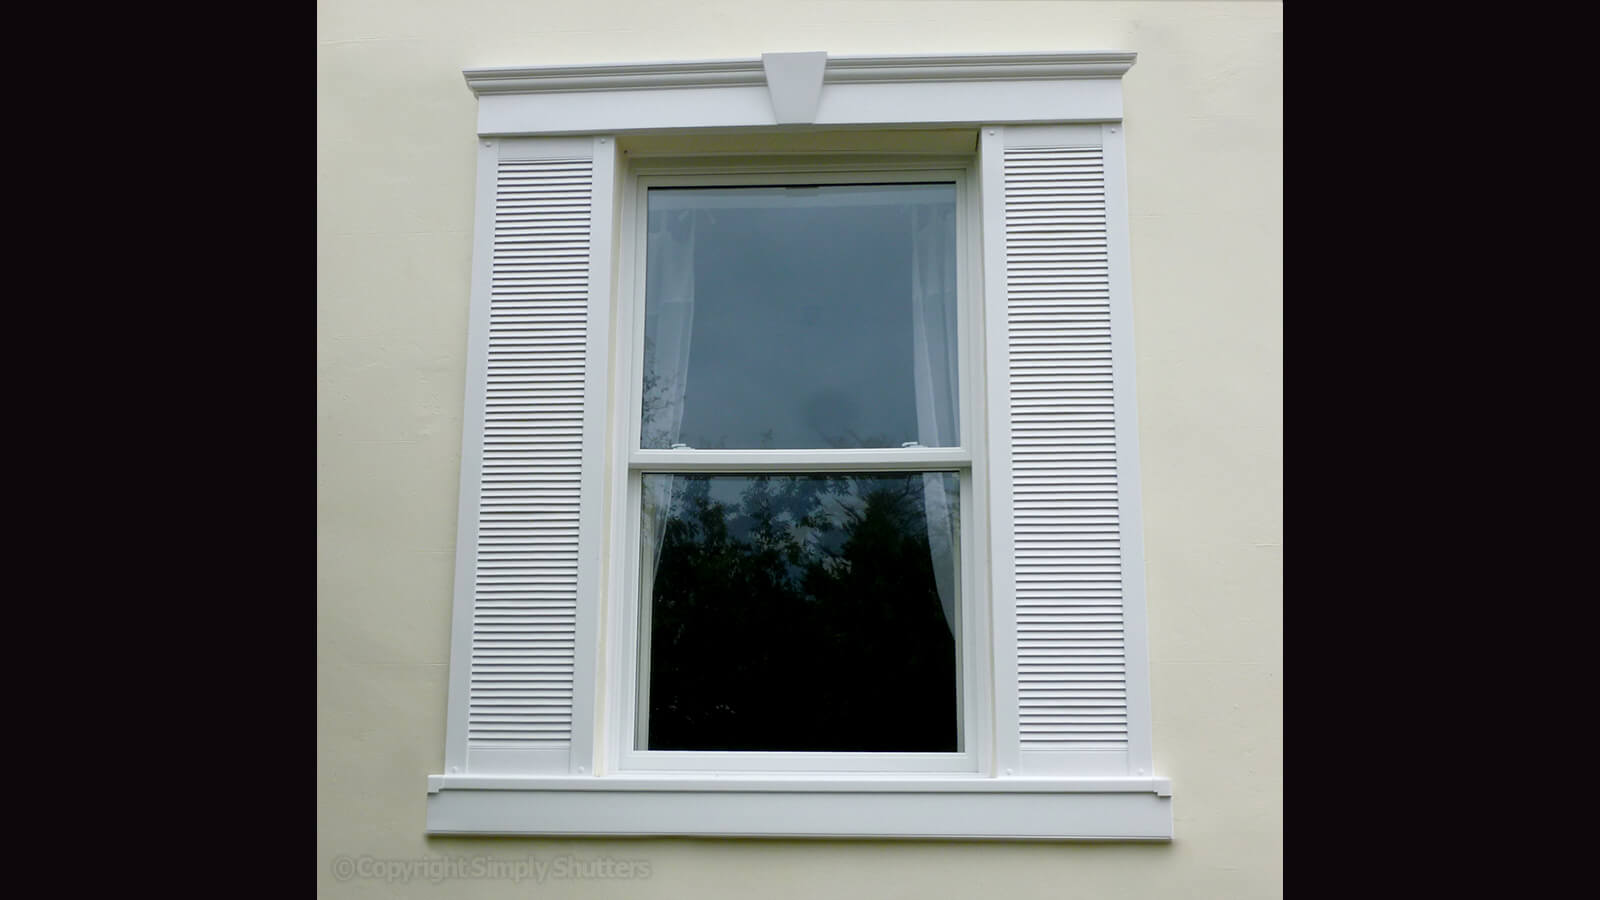 aluminium window installation instructions